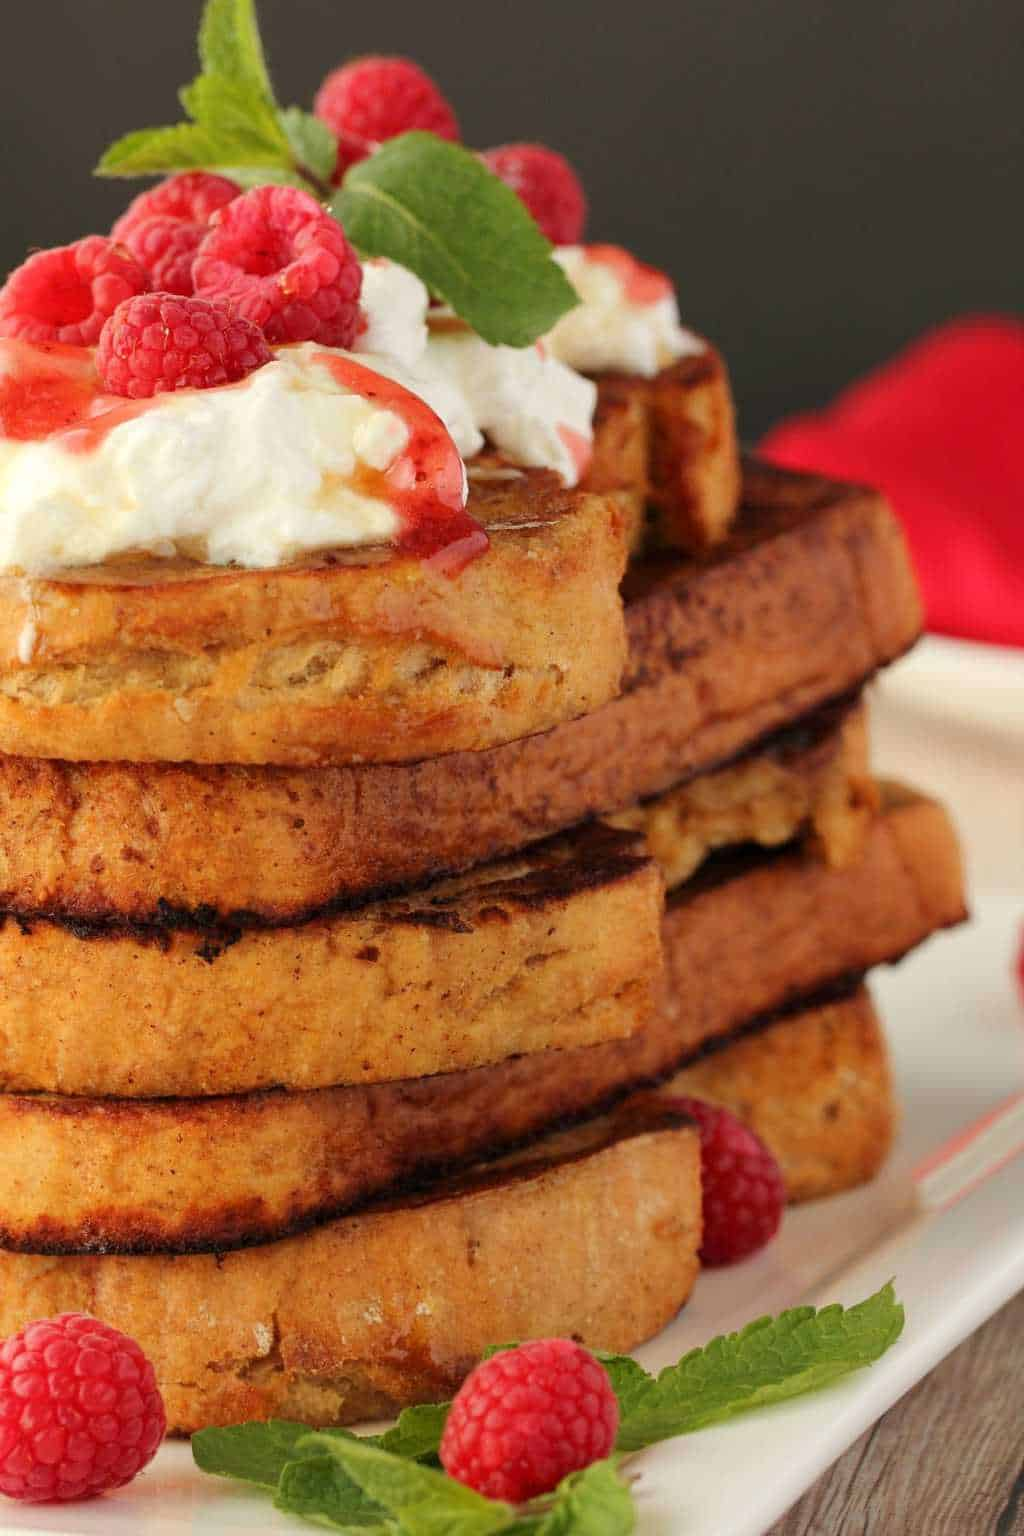 A stack of vegan french toast topped with syrup, vegan whipped cream and fresh raspberries.